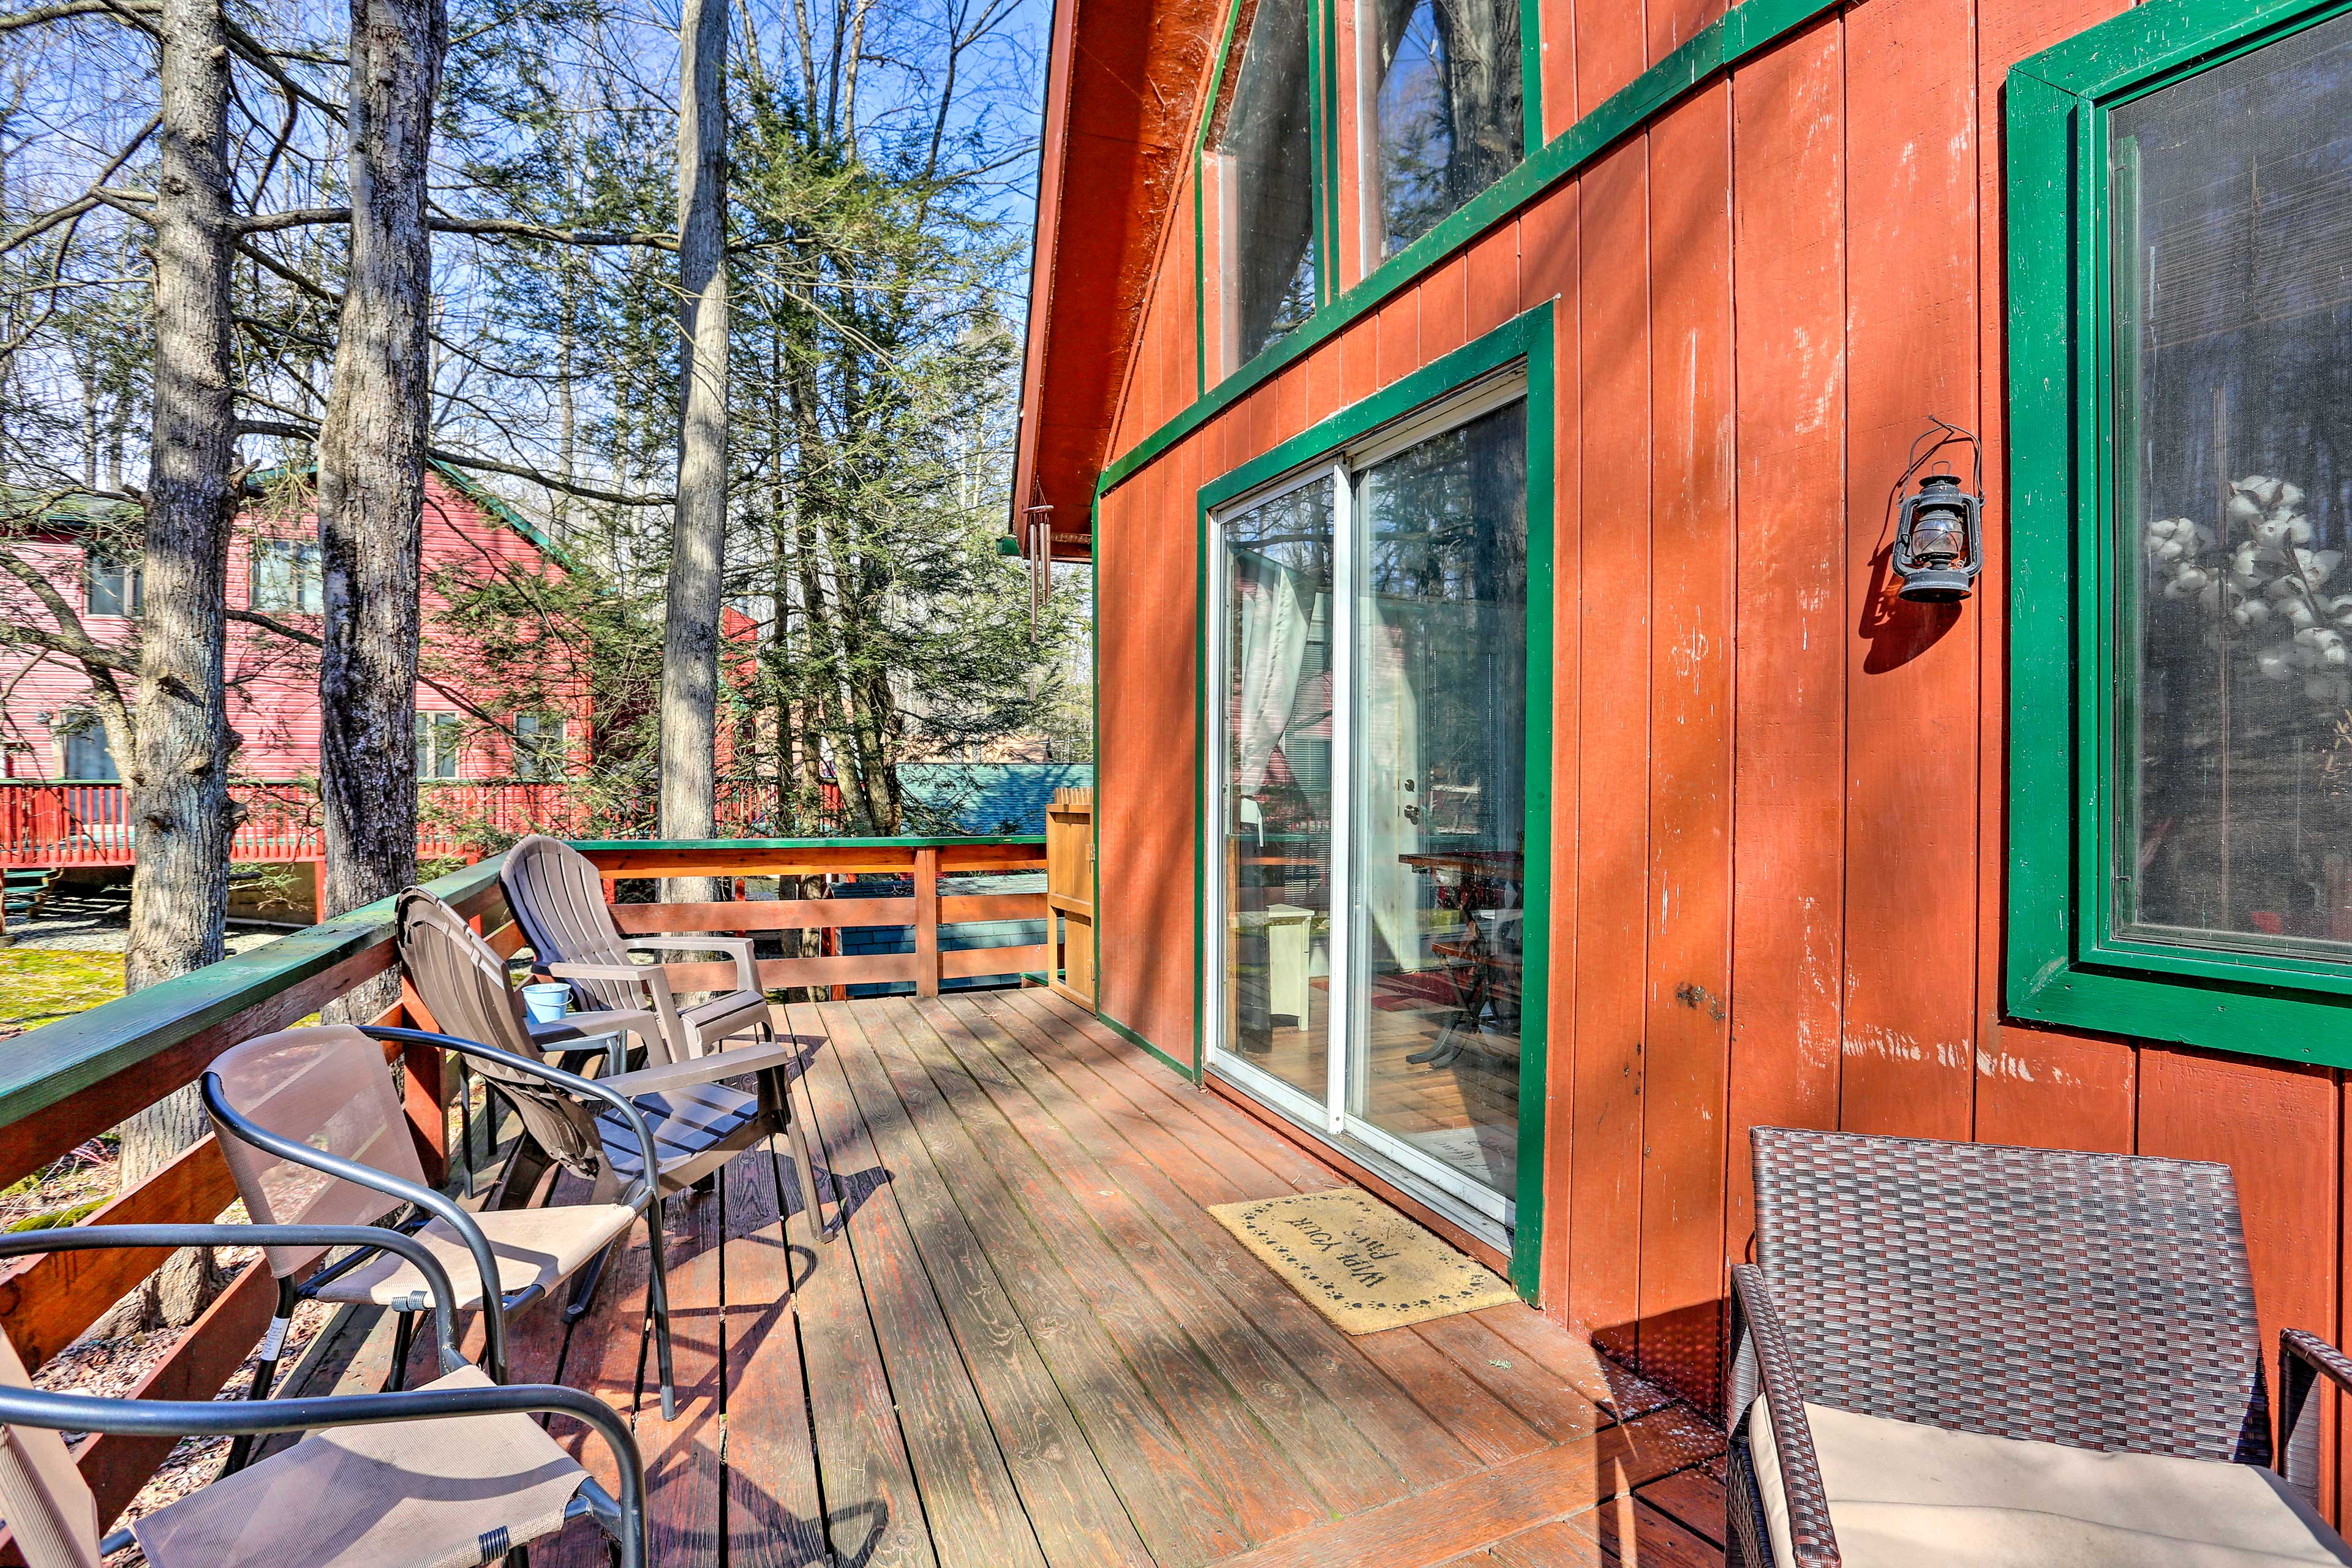 Breathe in the crisp forest air as you step onto the deck.